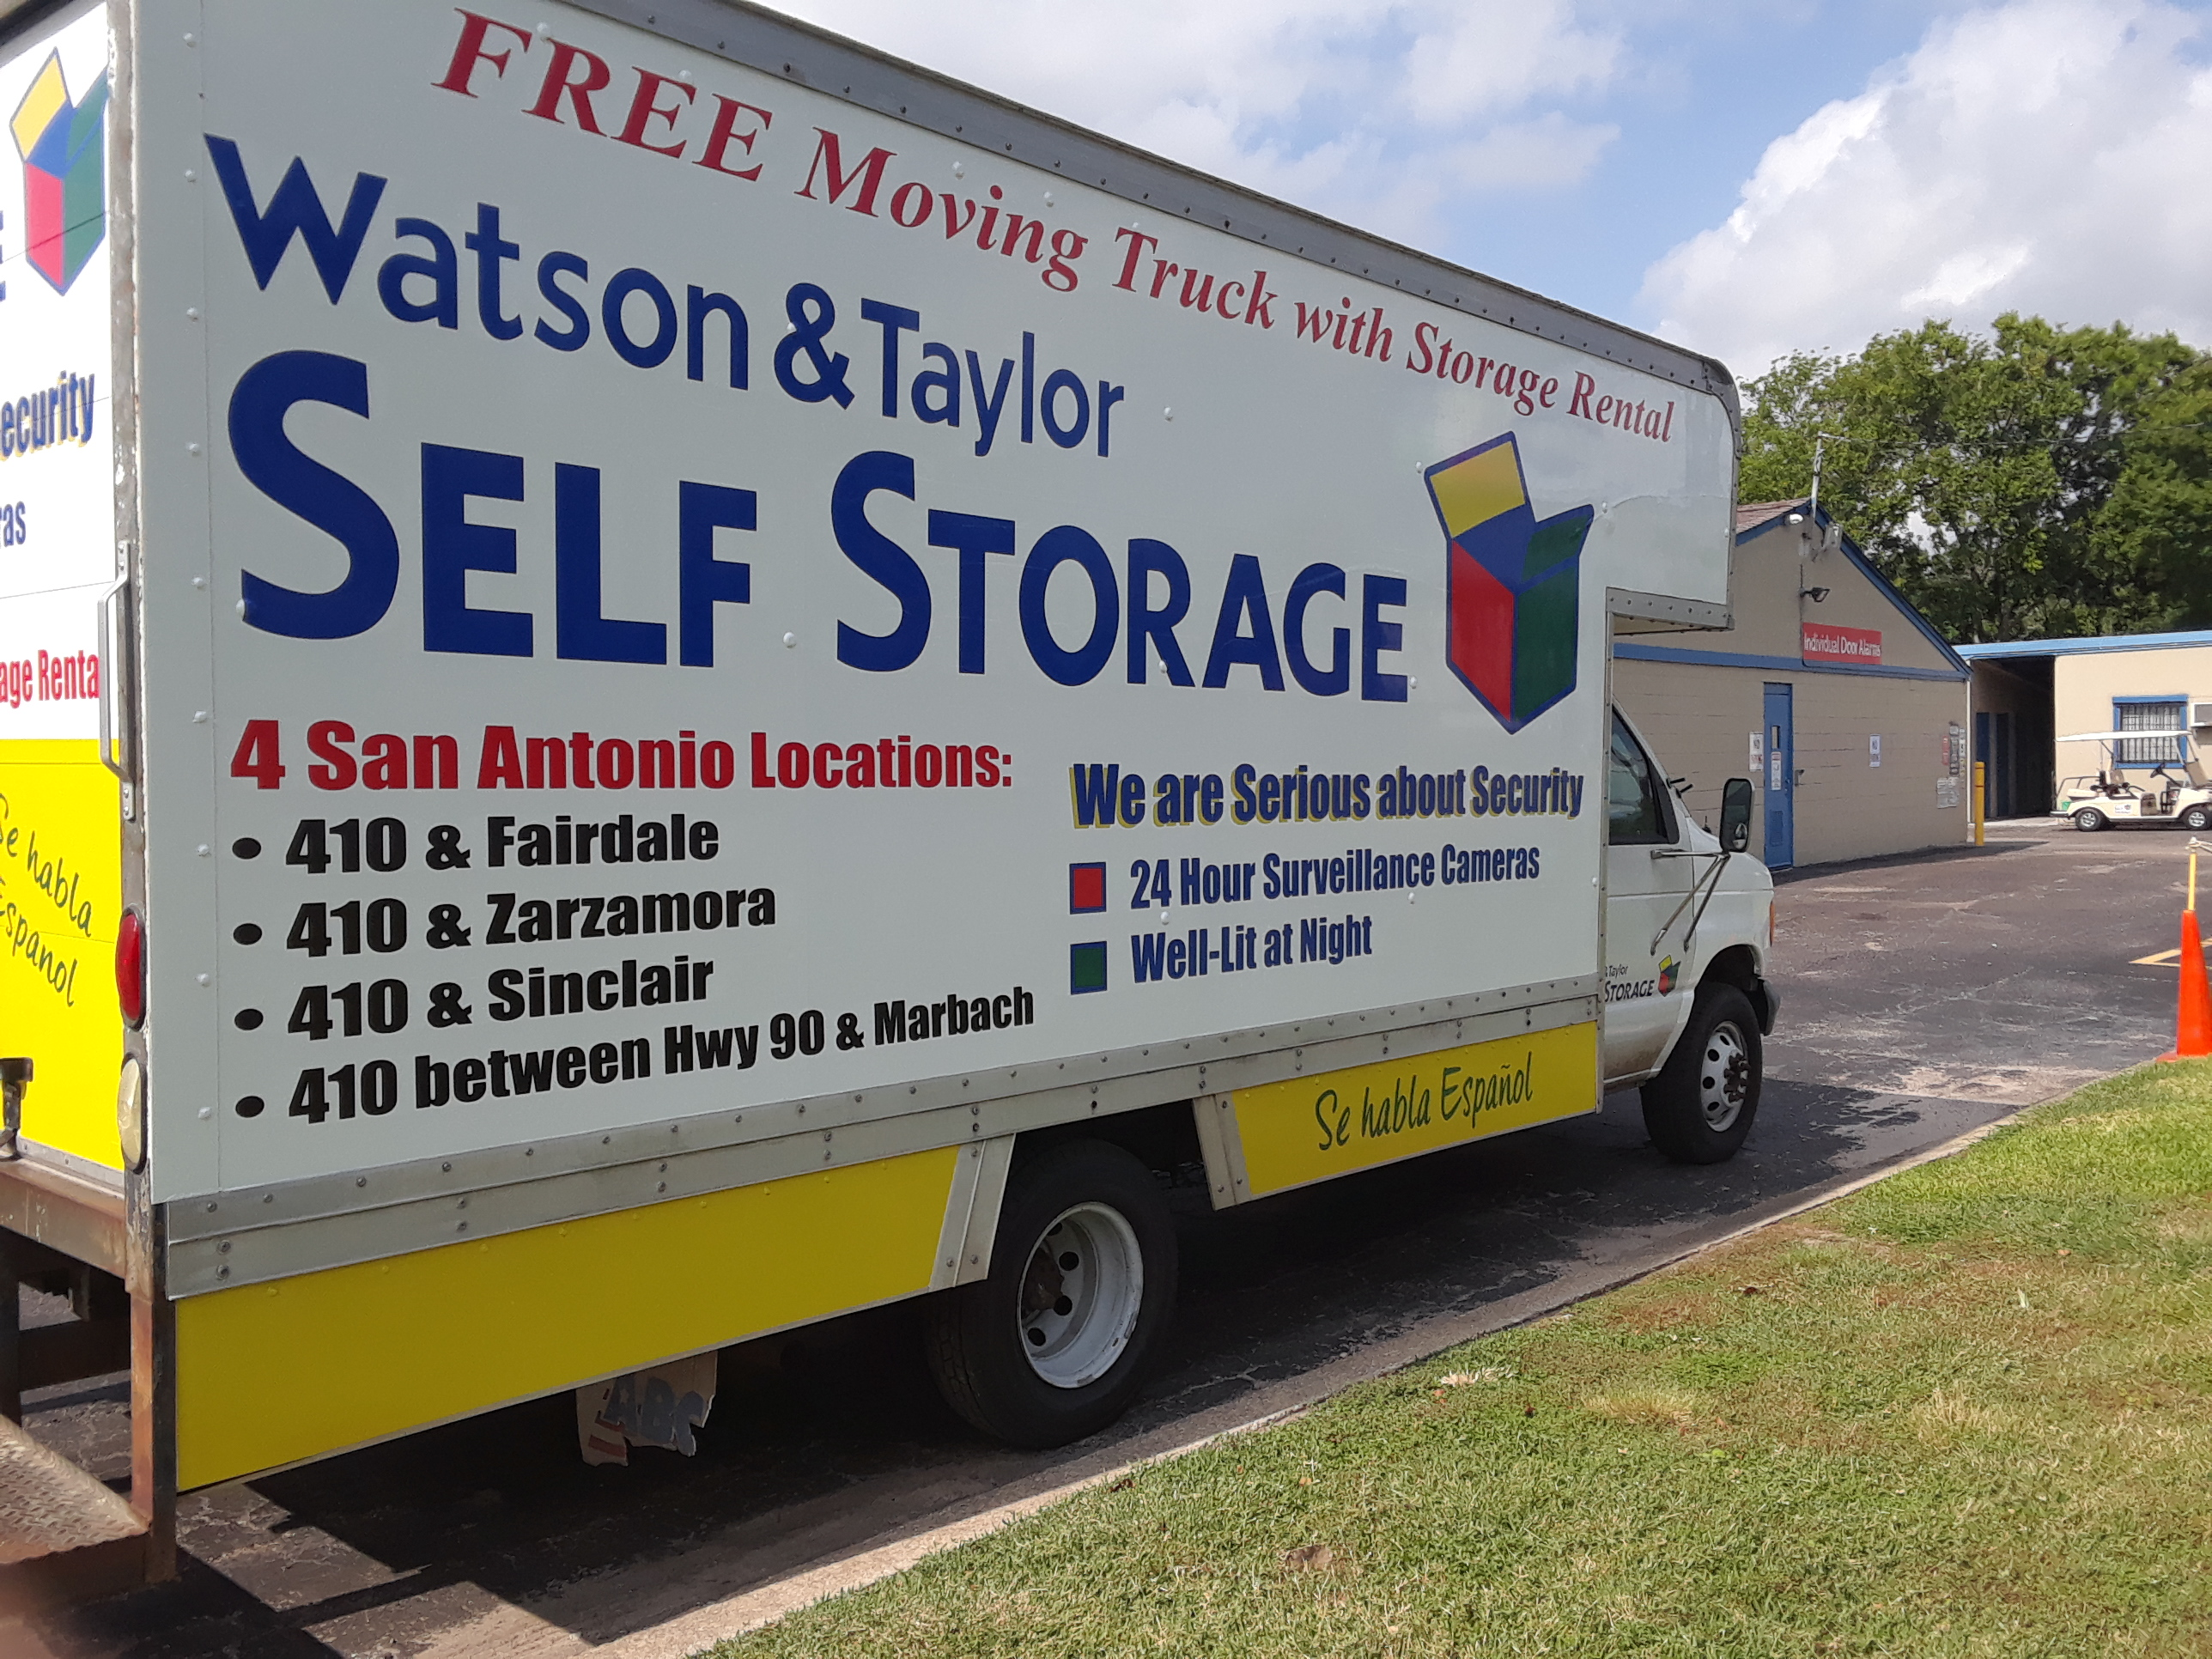 Watson & Taylor Self Storage - Iron Gate